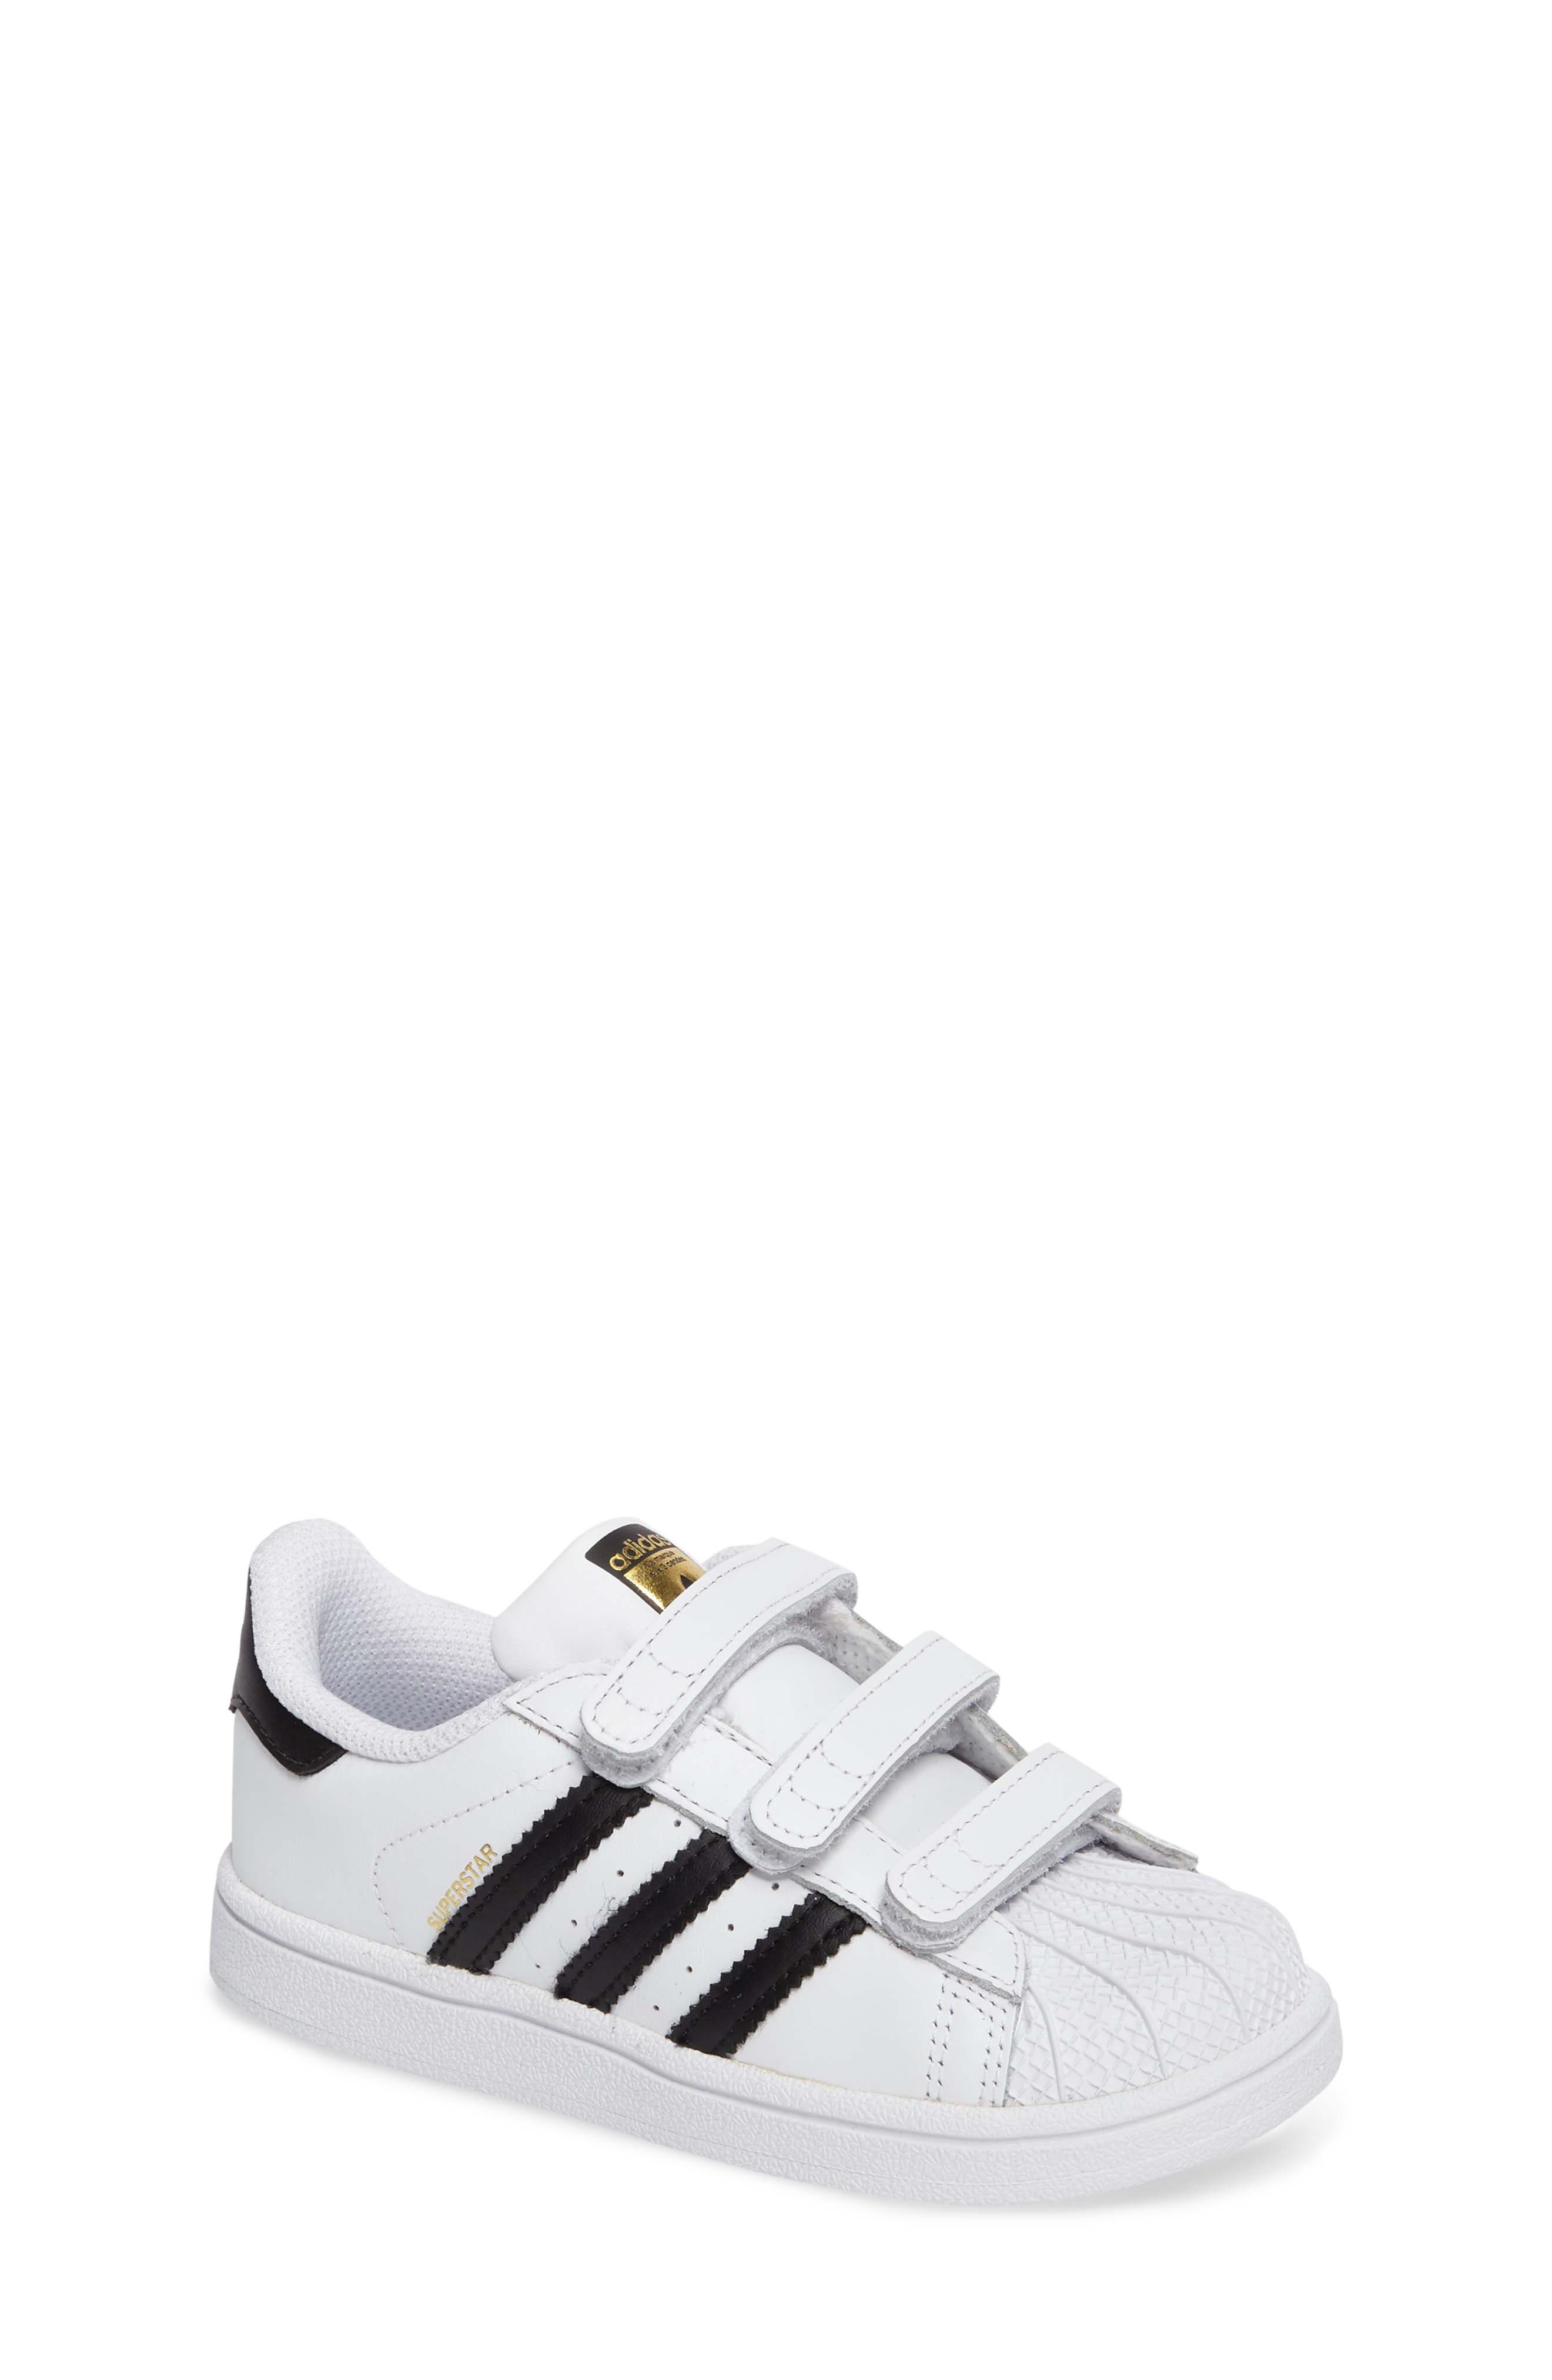 Toddler Boys' Adidas Shoes (Sizes 7.5 12) | Nordstrom